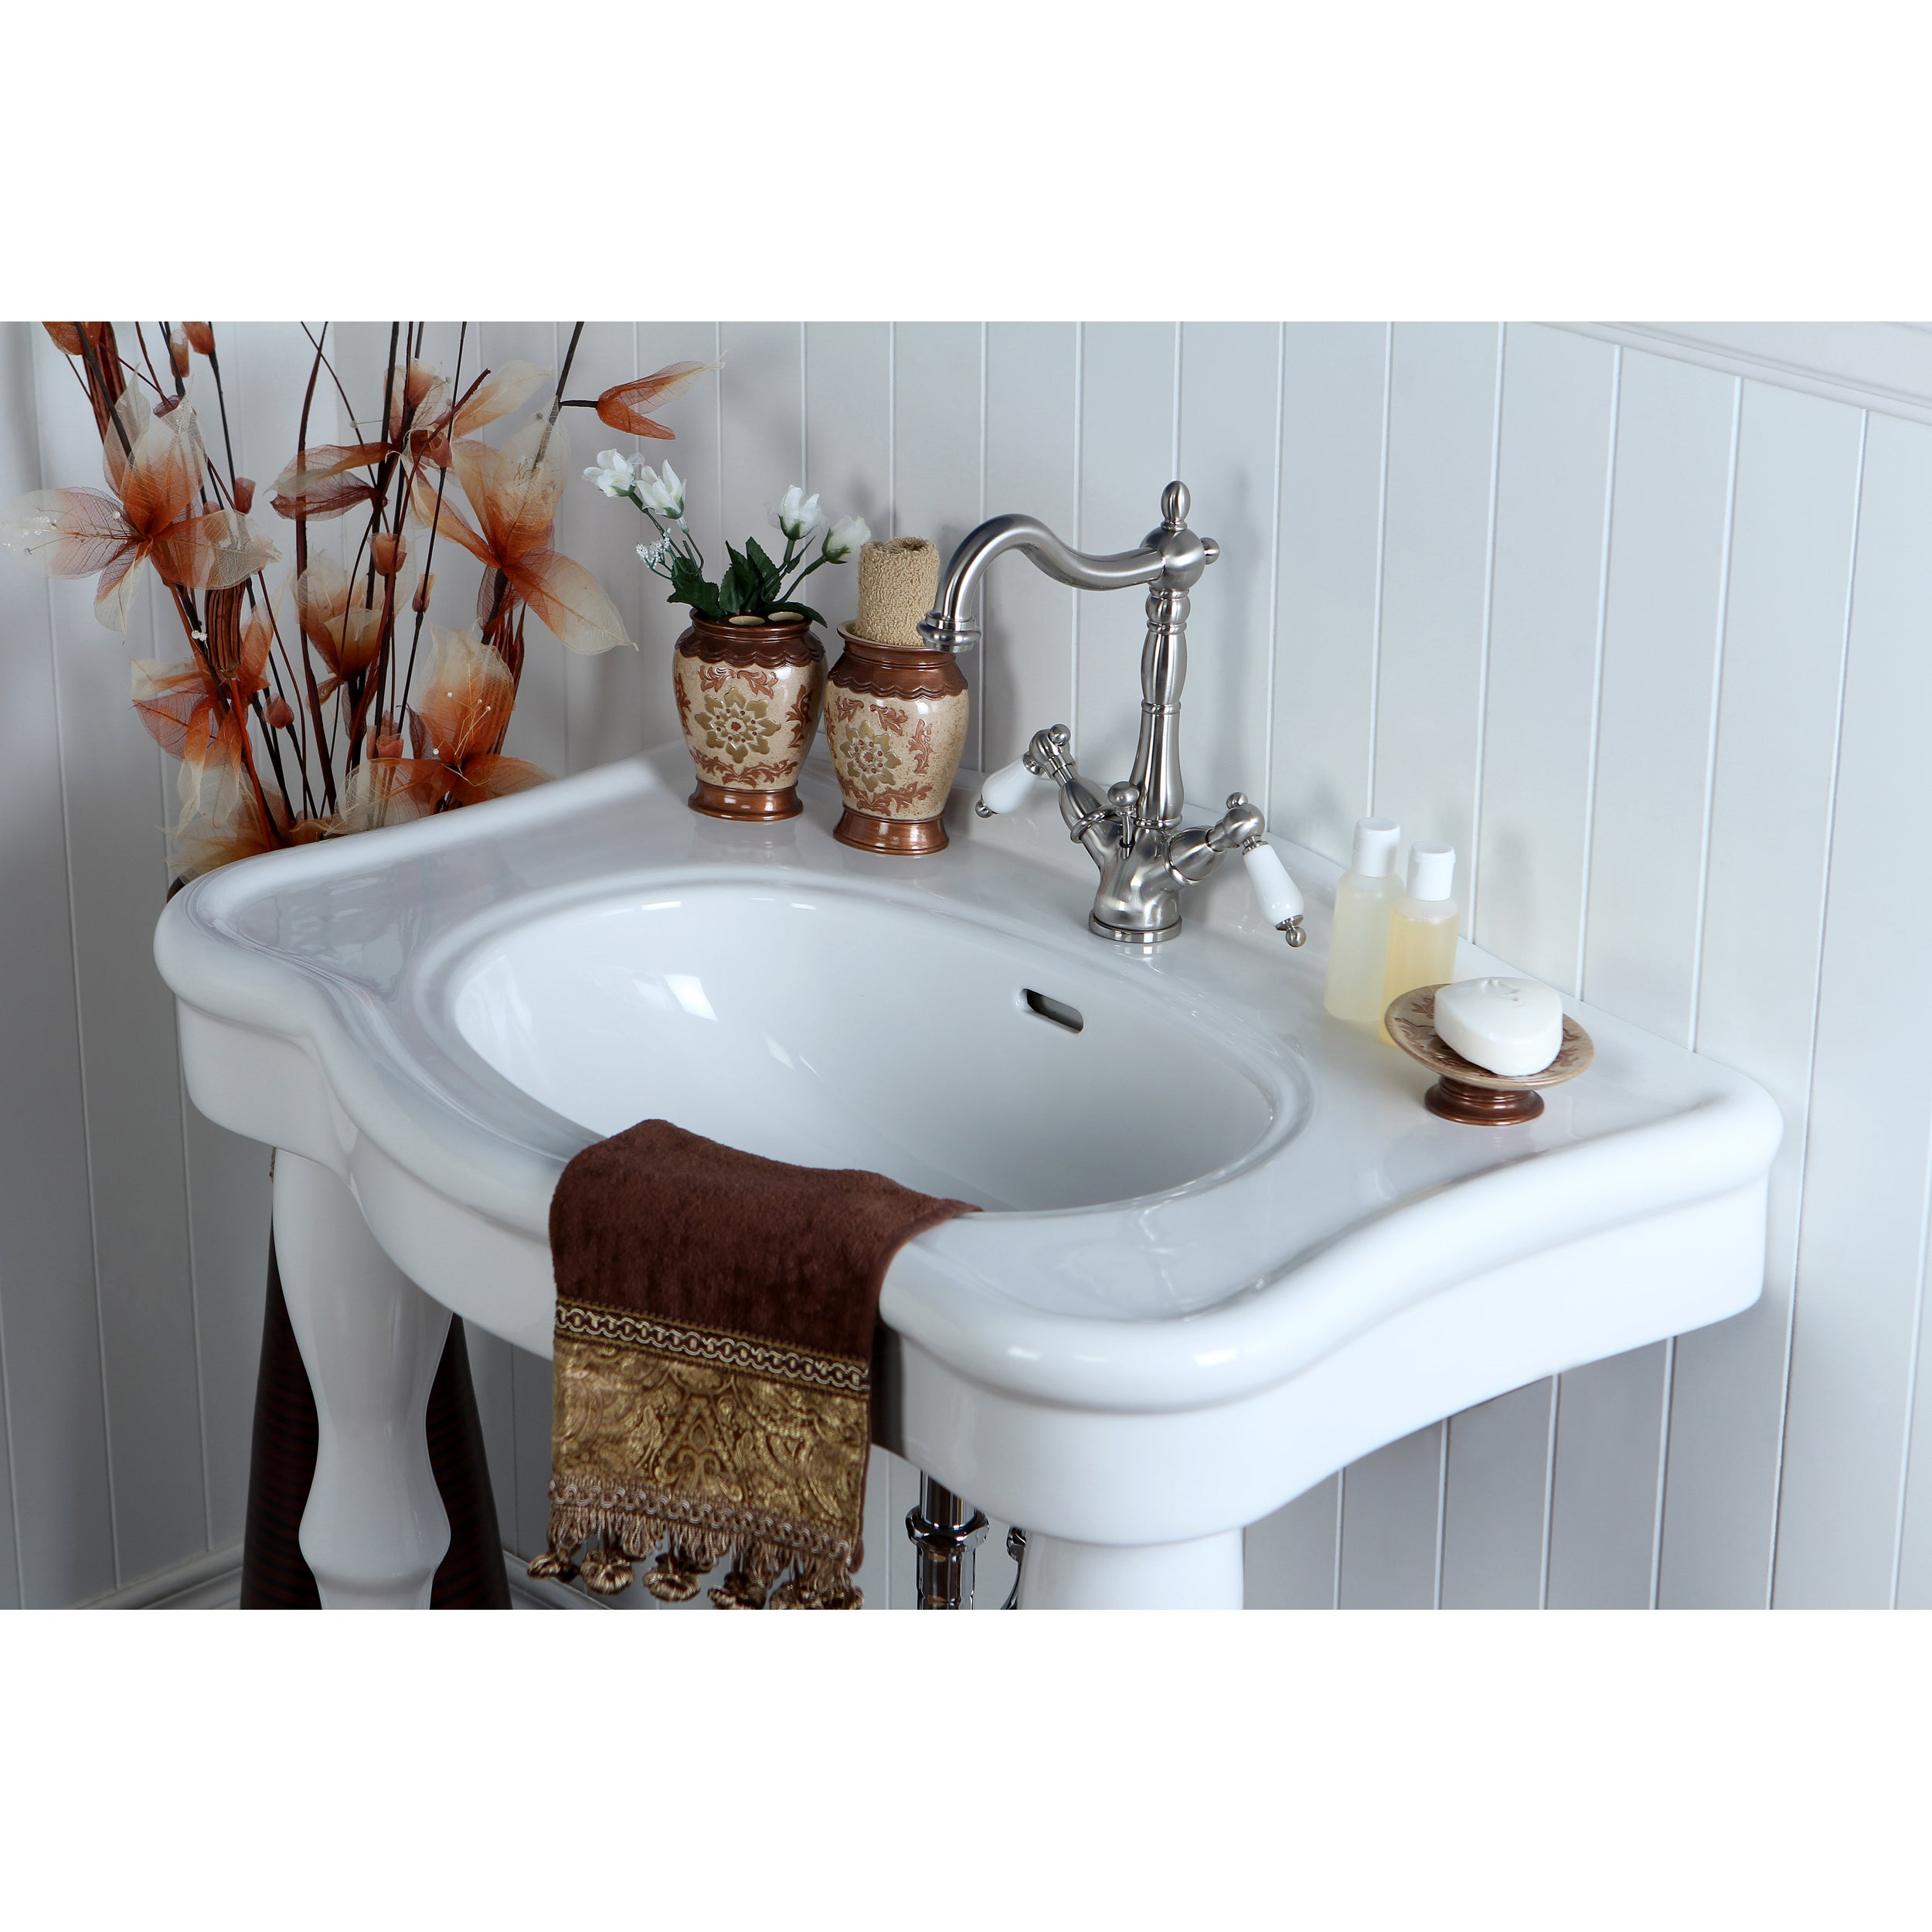 amerisink sink bathroom x product vanity sinks pedestal